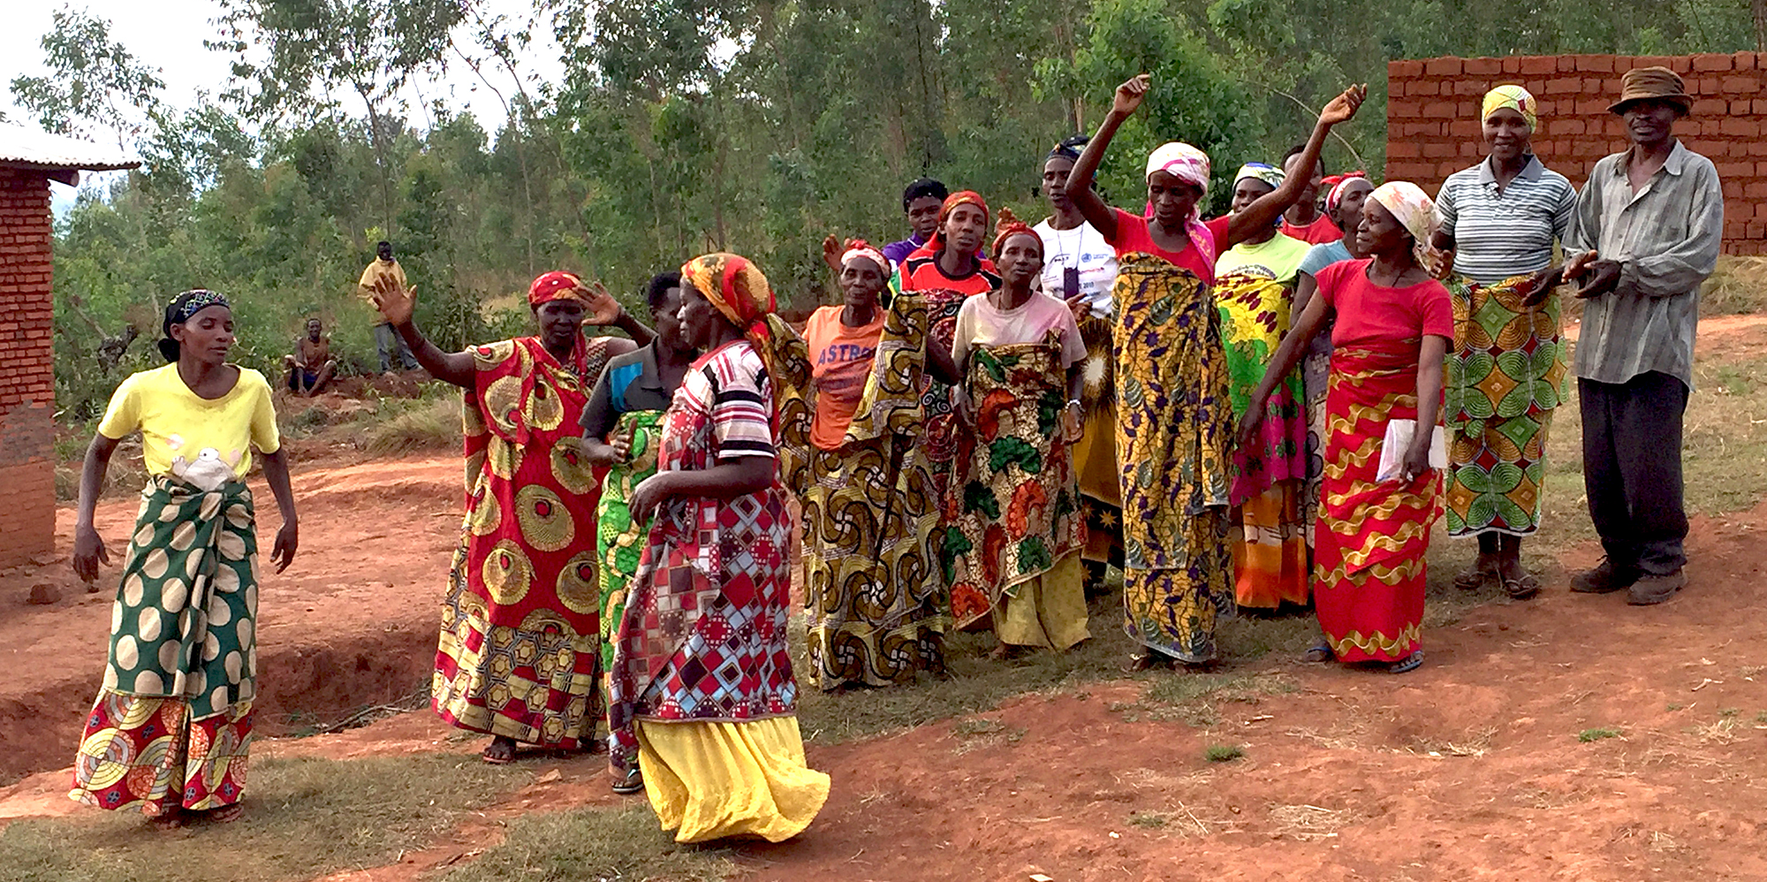 You can support trauma healing and reconciliation in Burundi image